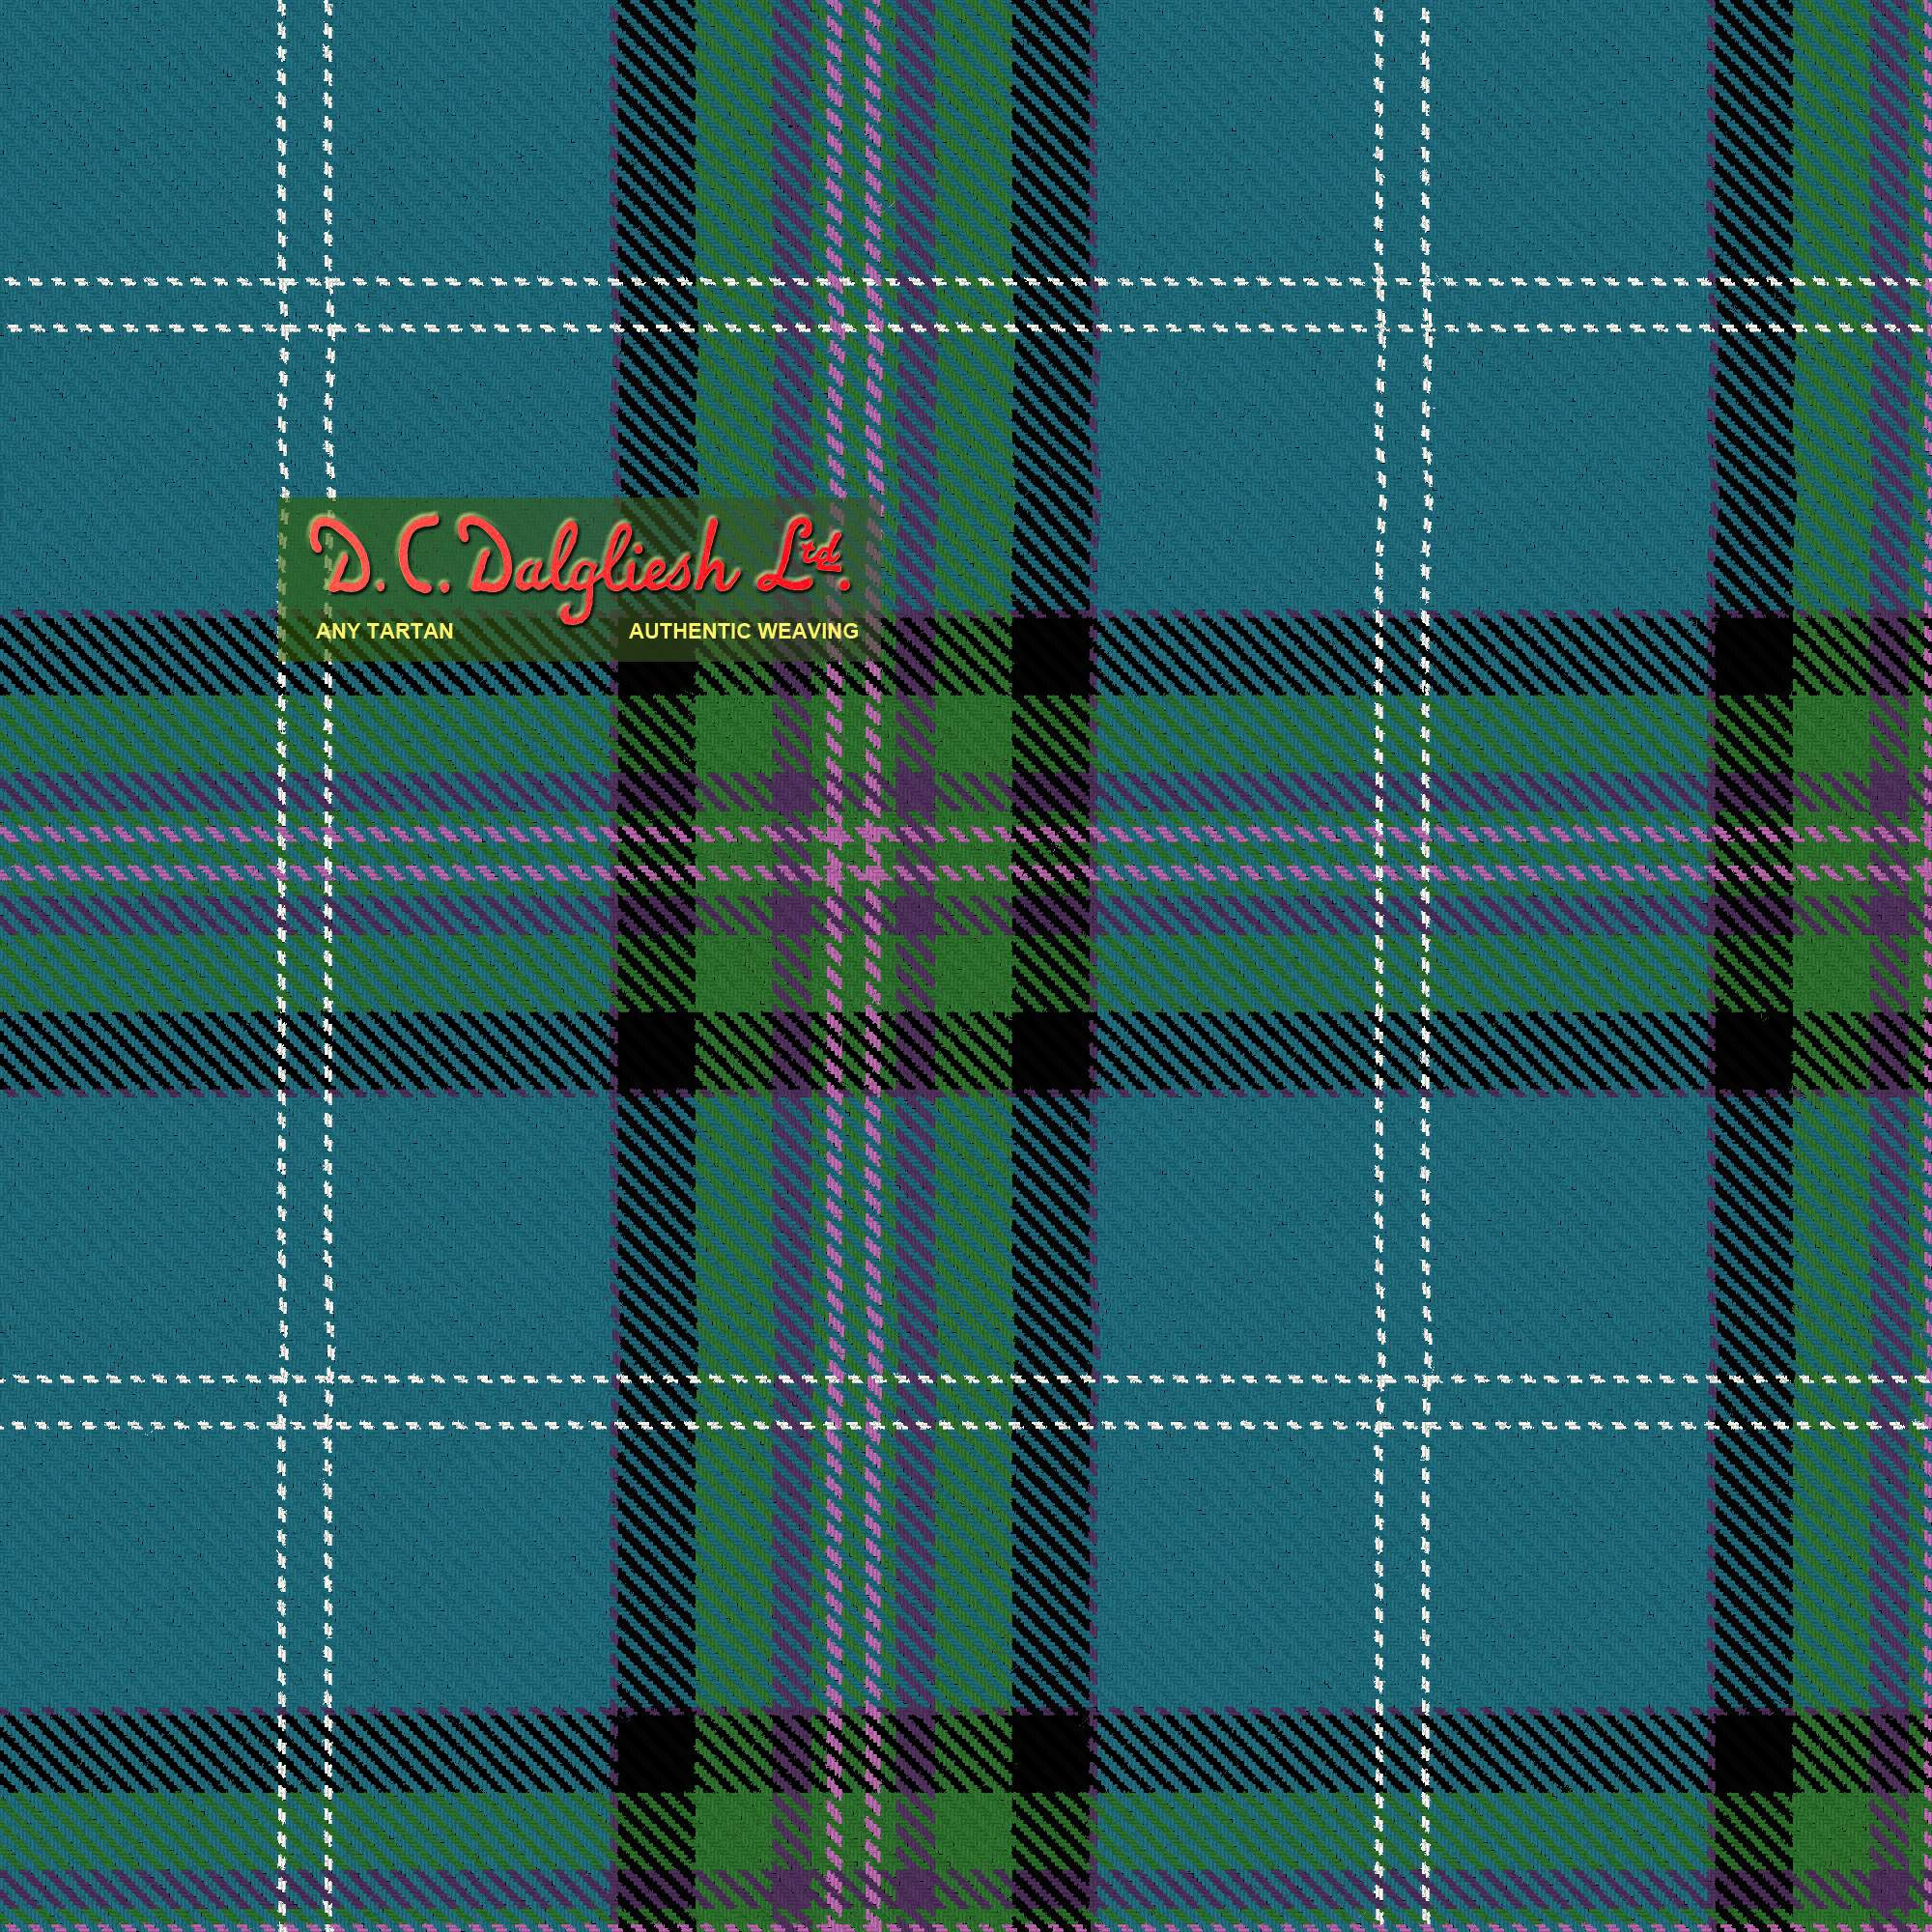 Scotland The Brave Fabric By Dc Dalgliesh Hand Crafted